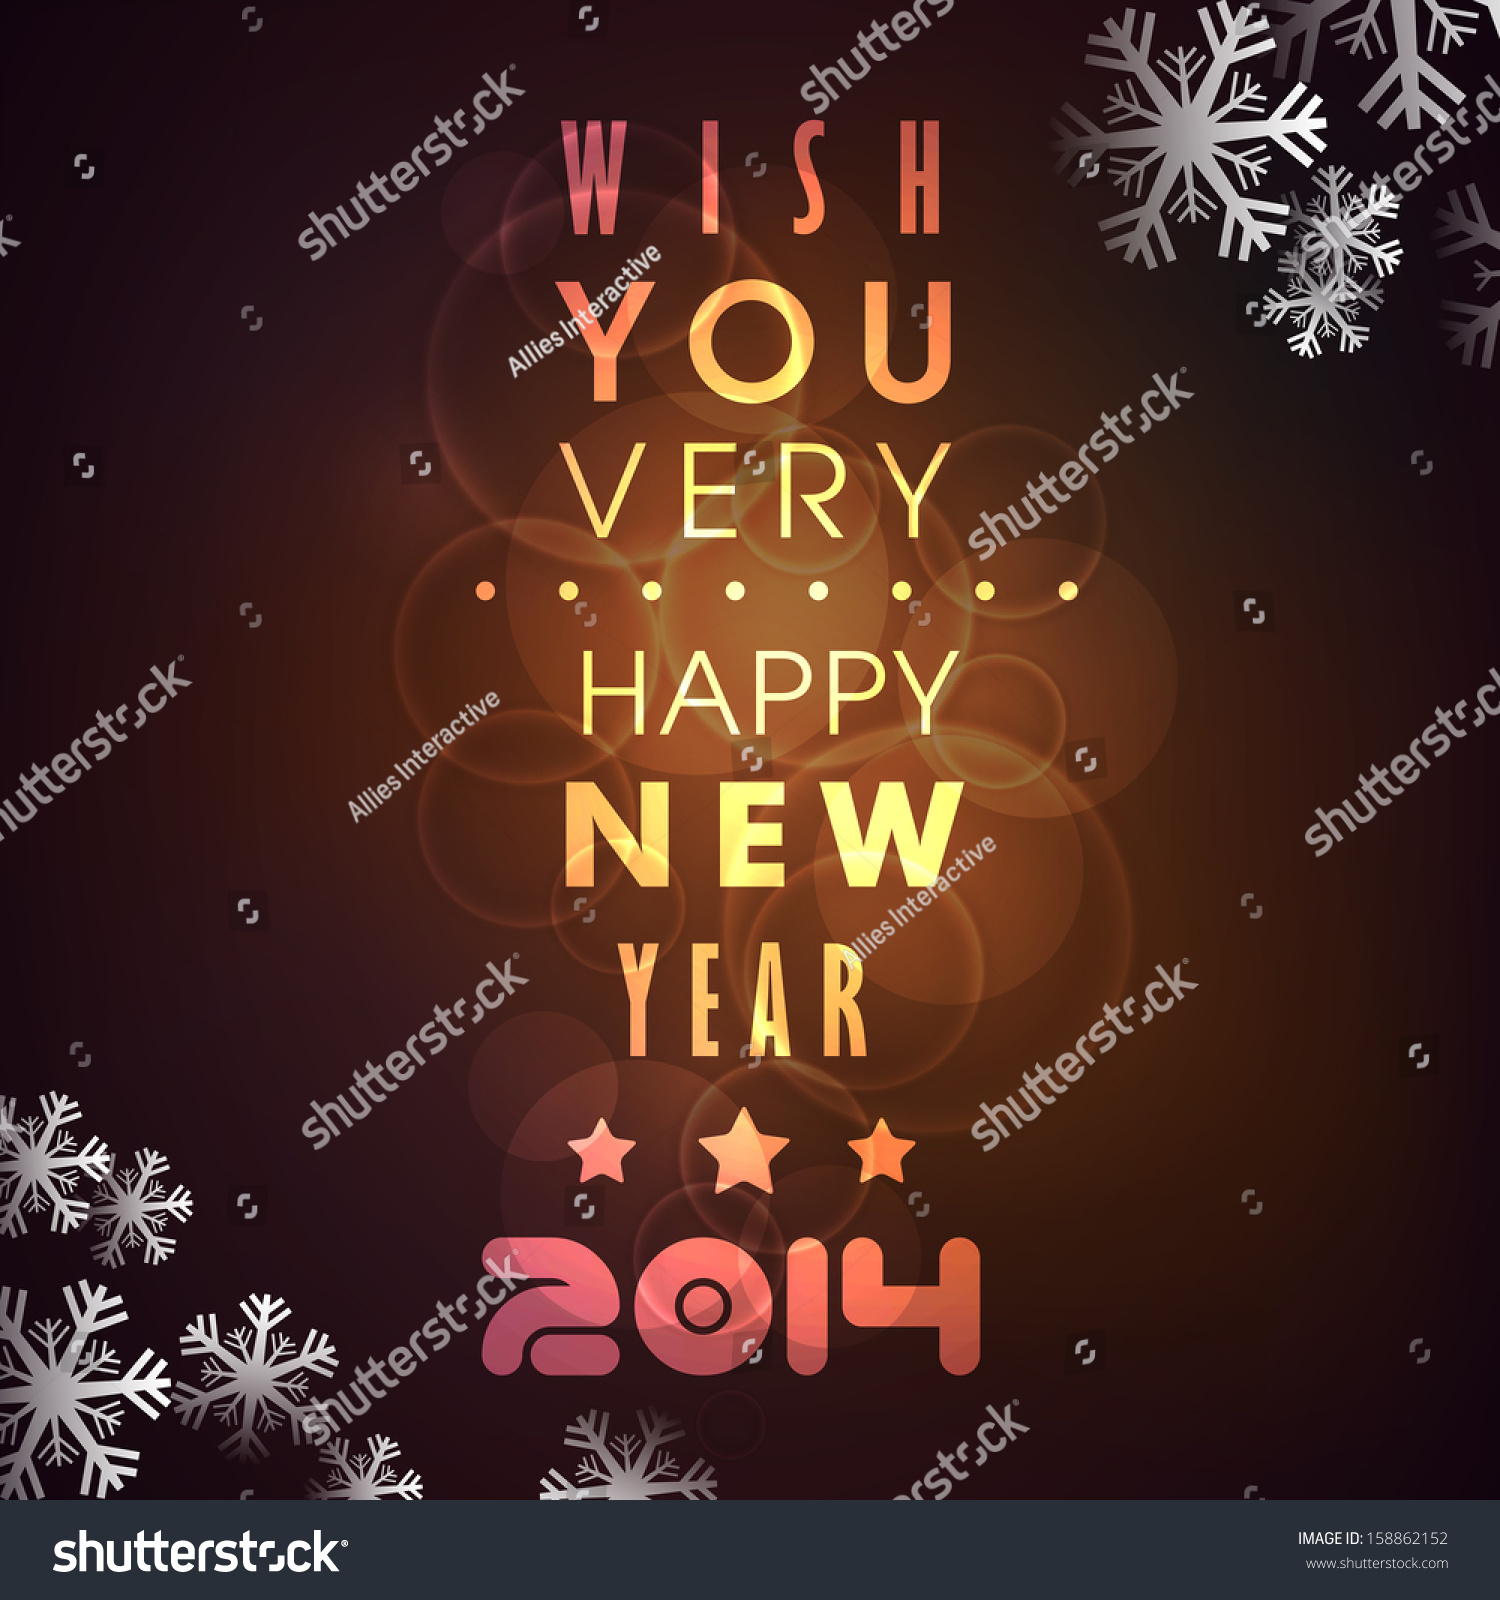 Elegant greeting card happy new year stock vector 158862152 elegant greeting card for happy new year 2014 with golden text on snowflakes decorated brown background m4hsunfo